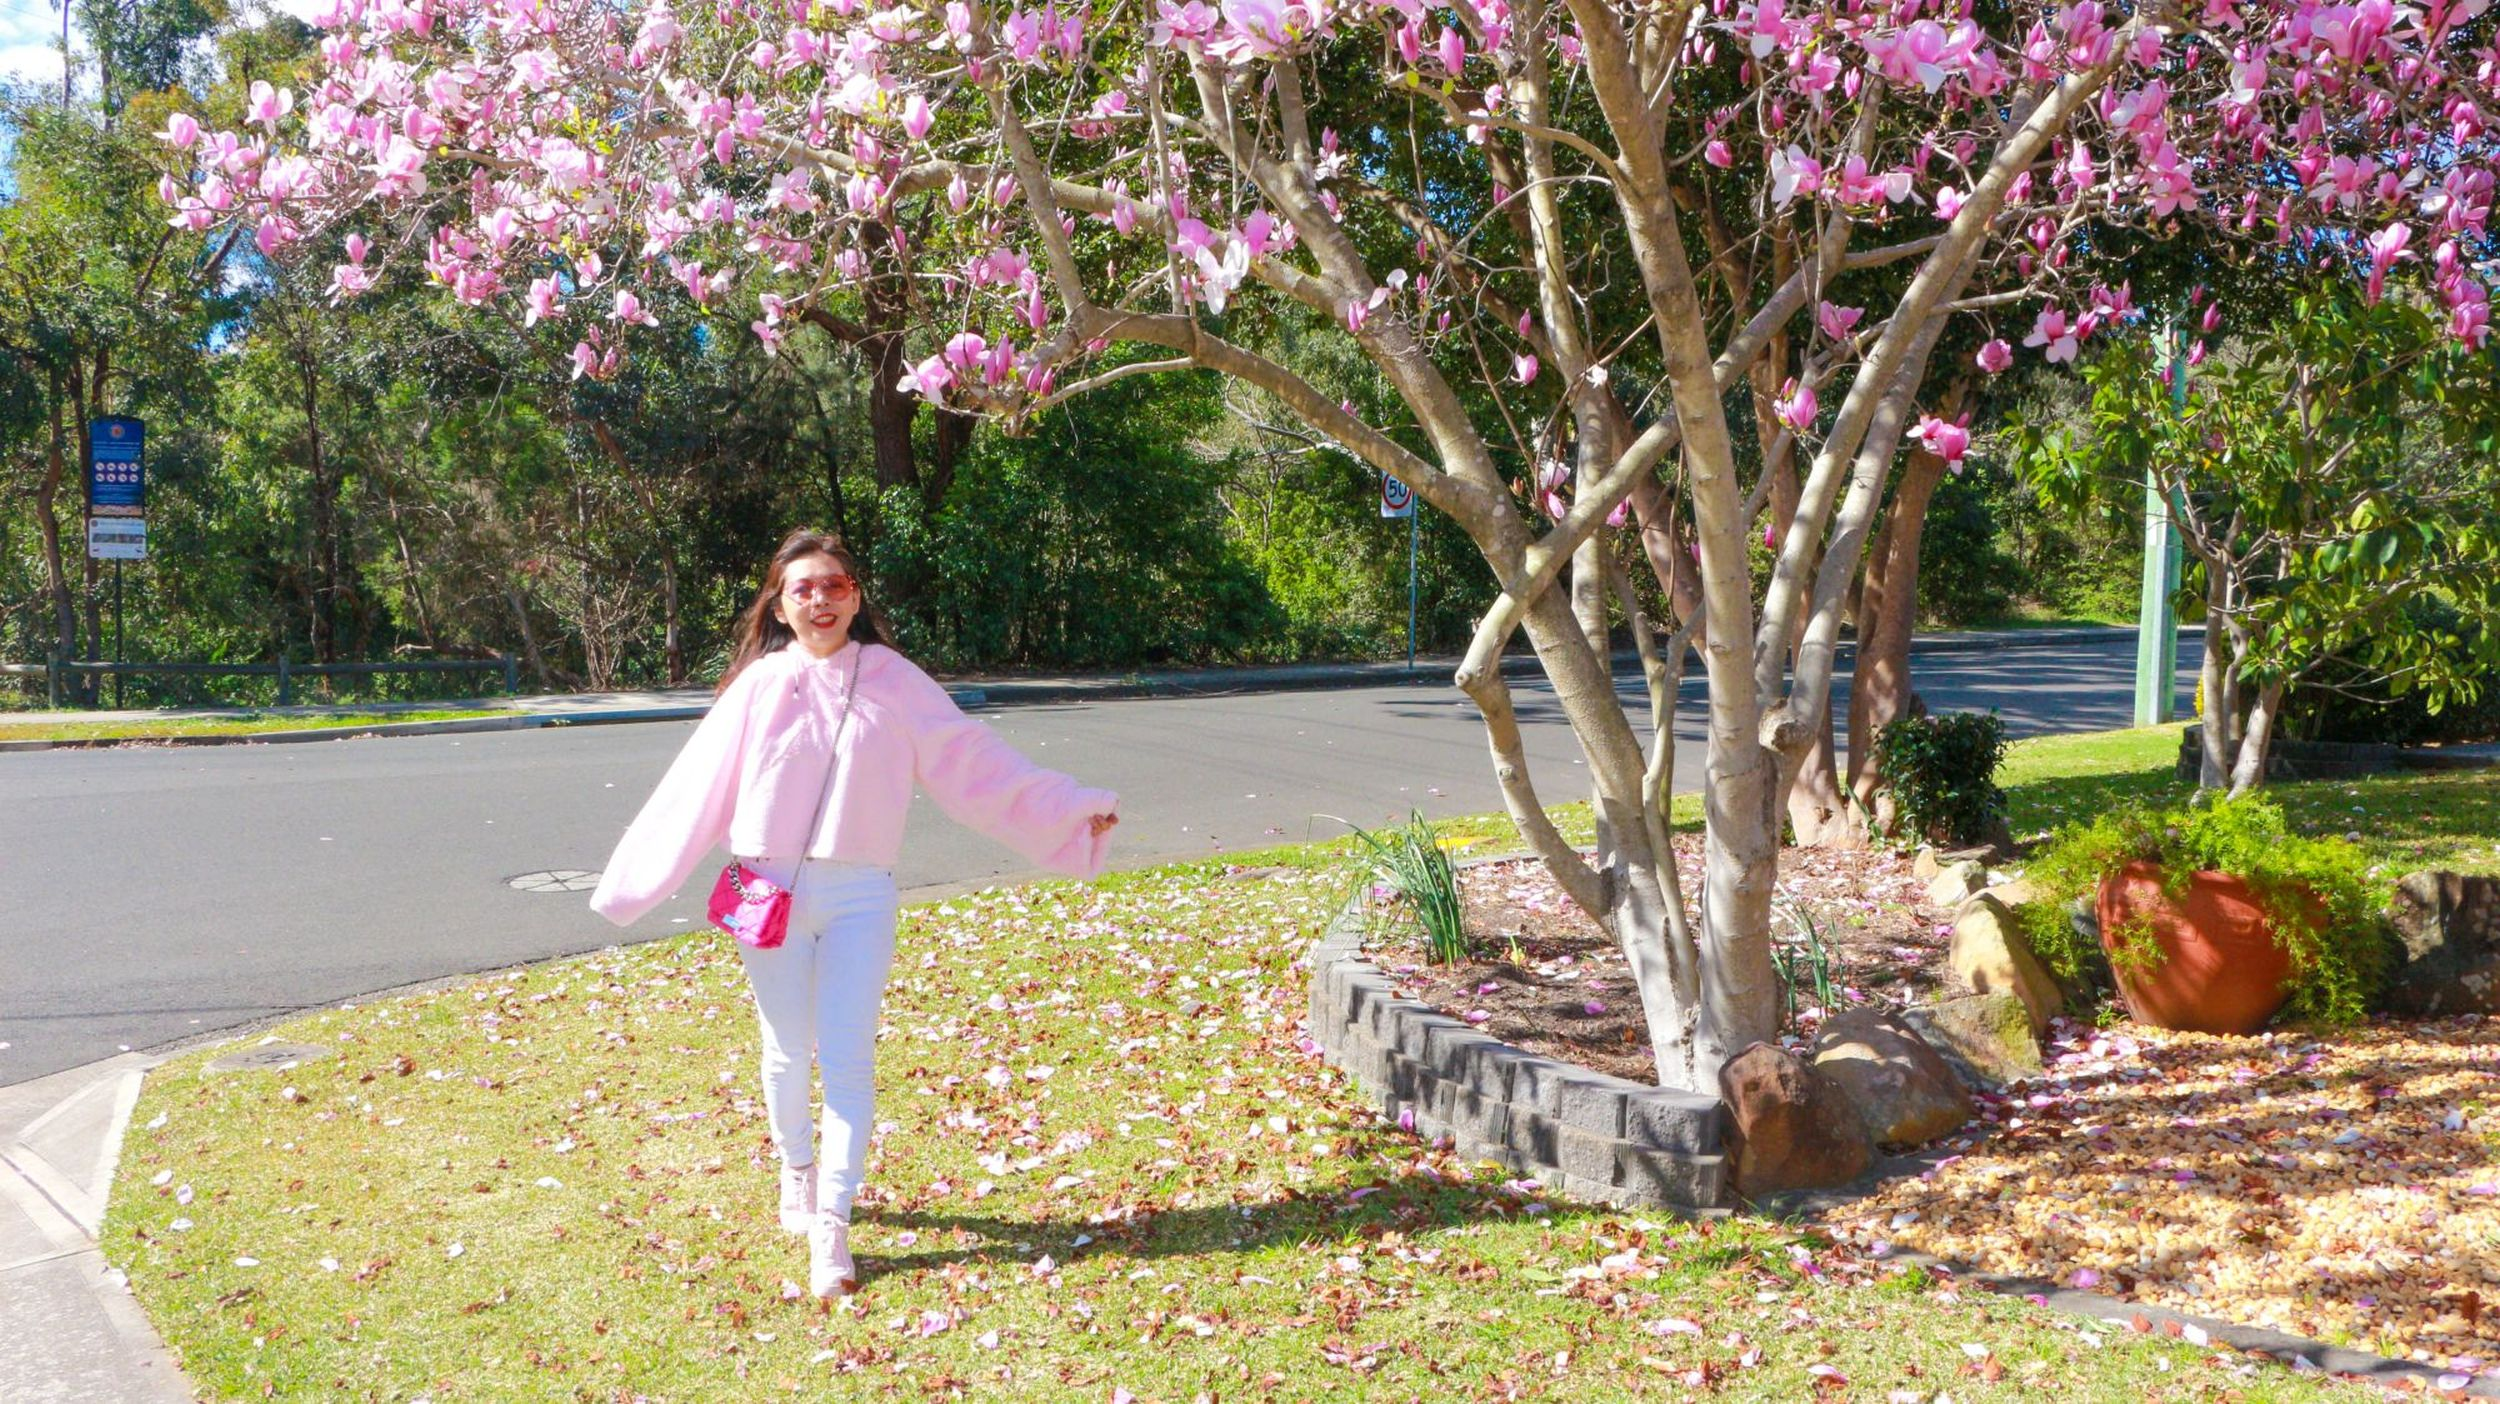 What to wear on Spring in Australia